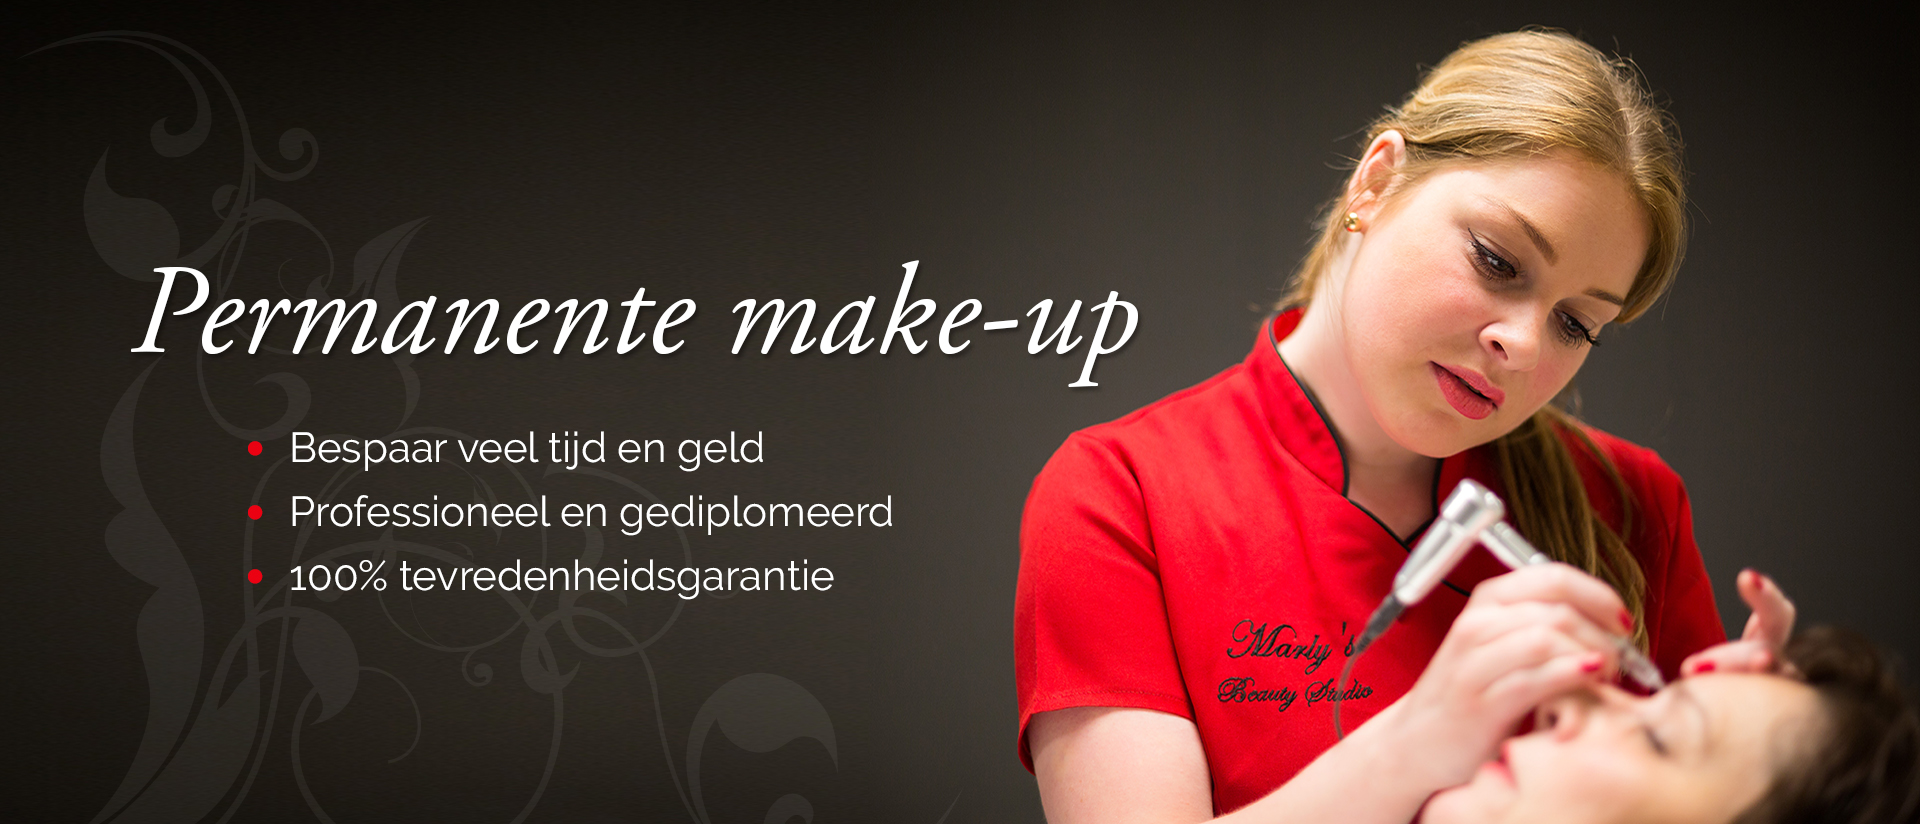 Permanente make-up Helmond